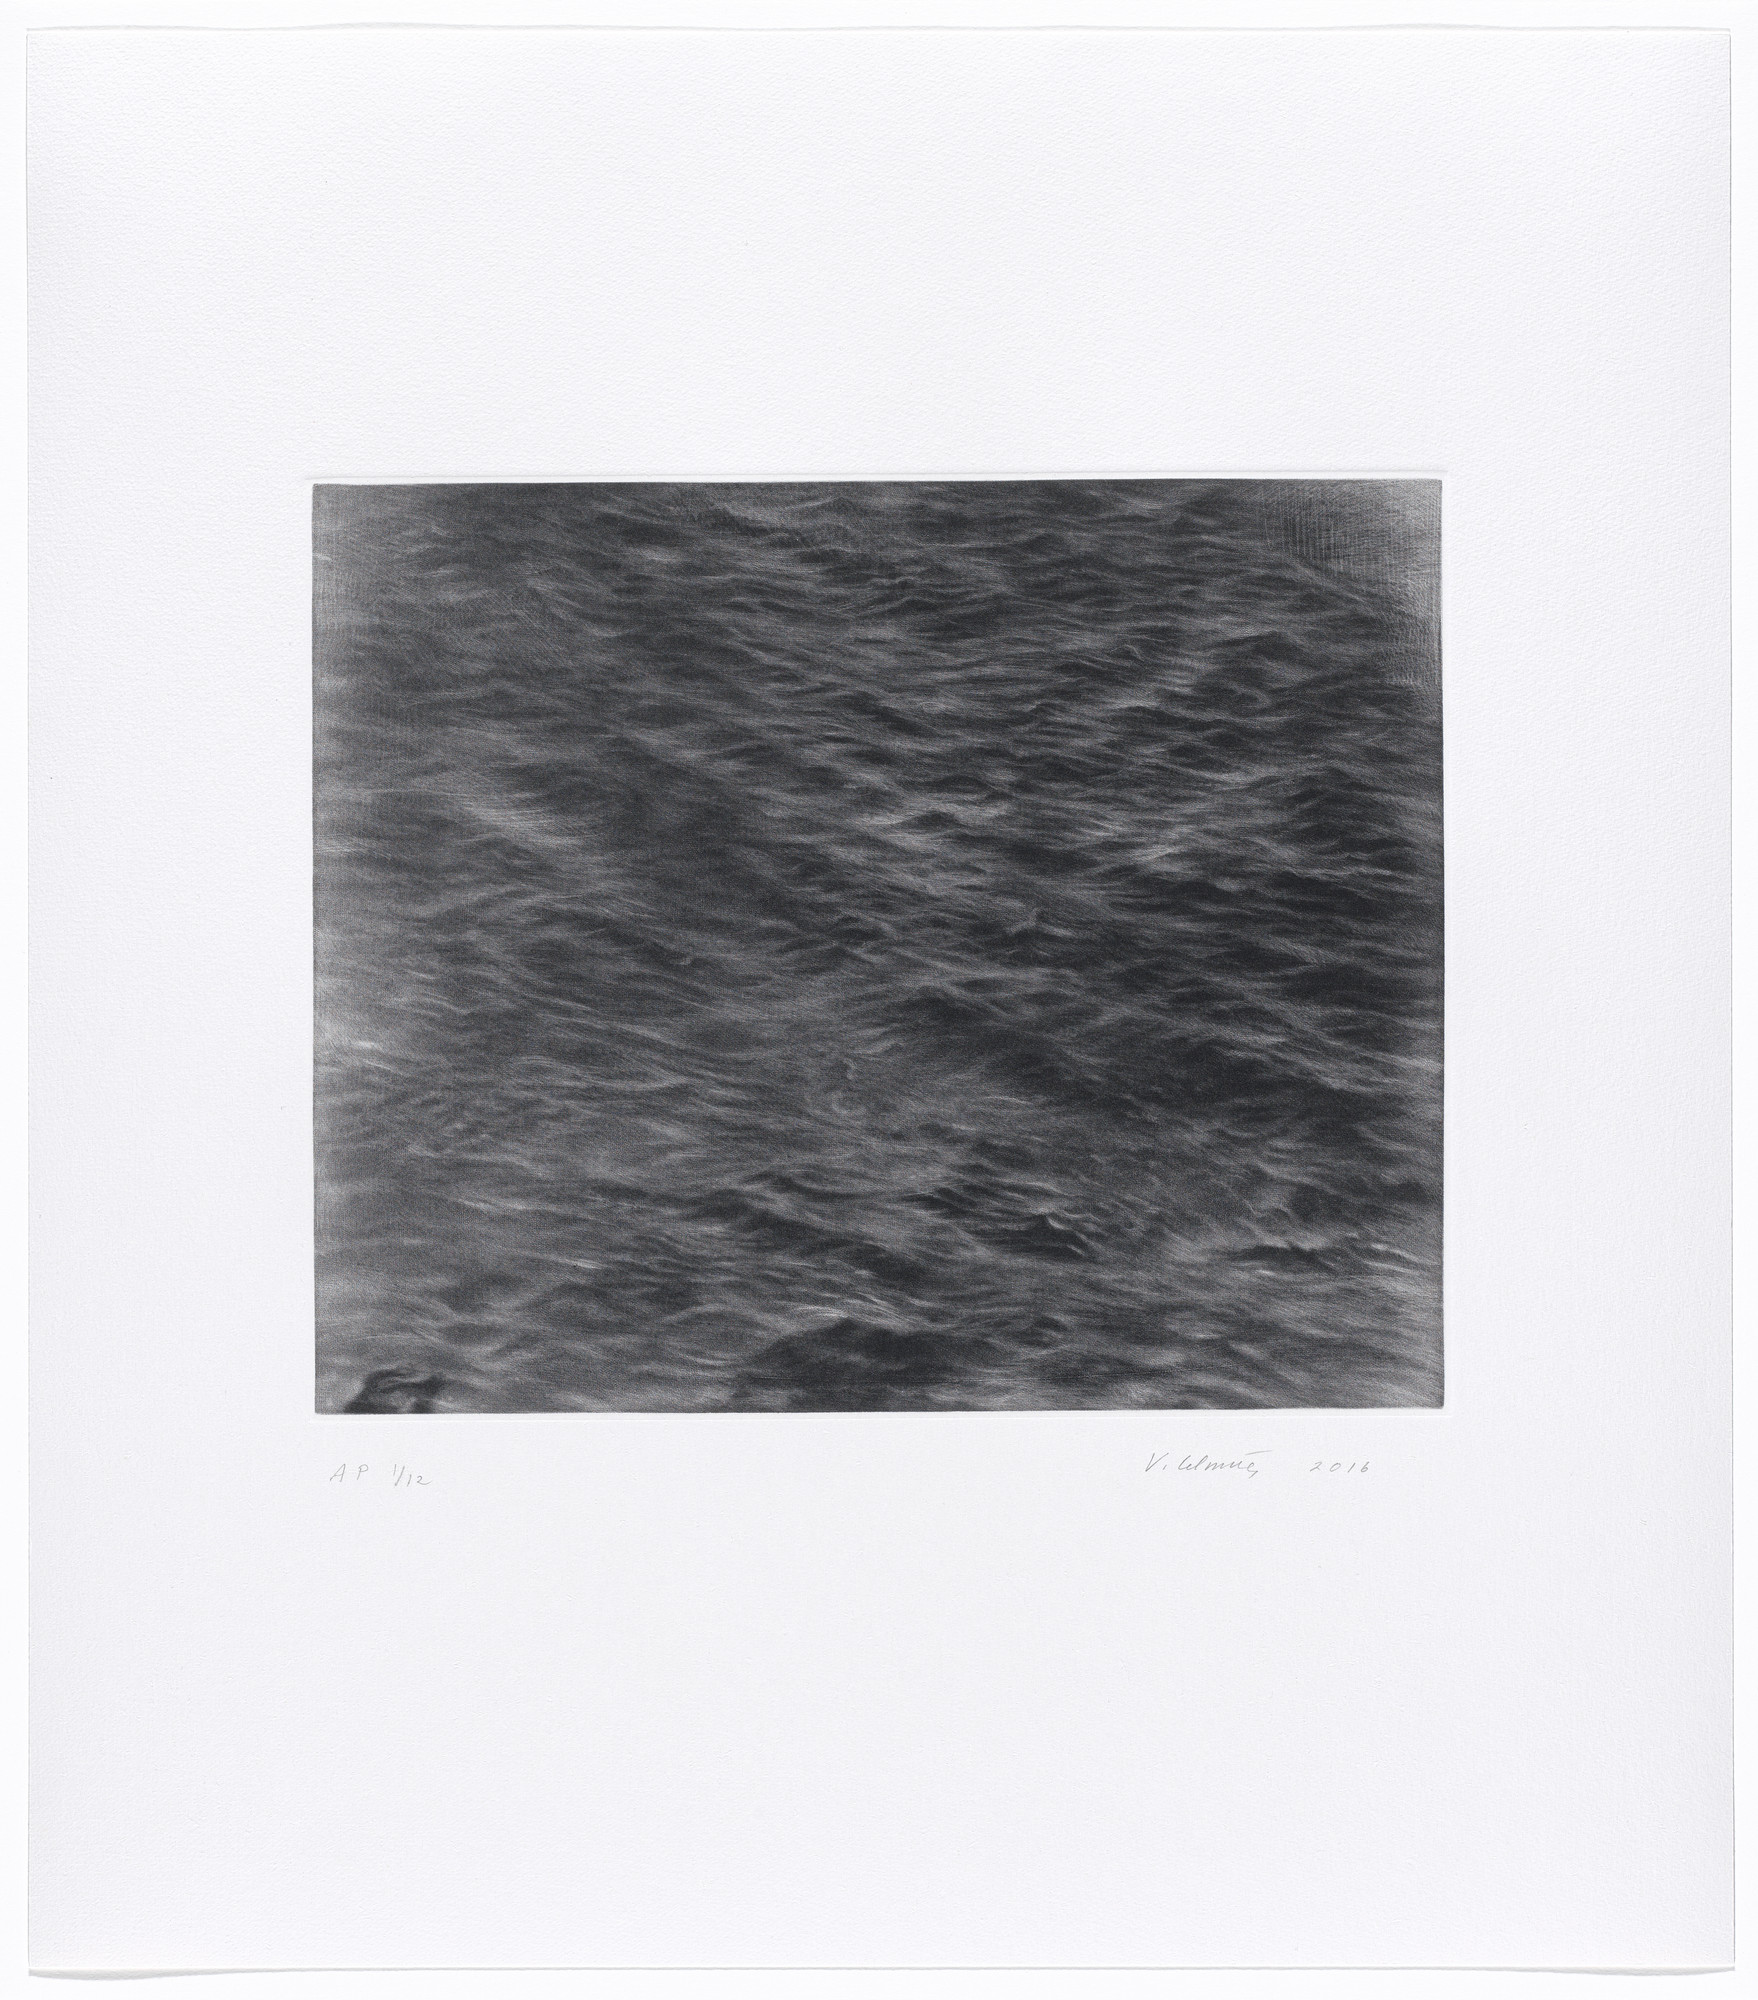 Vija Celmins. Untitled Ocean. 2016